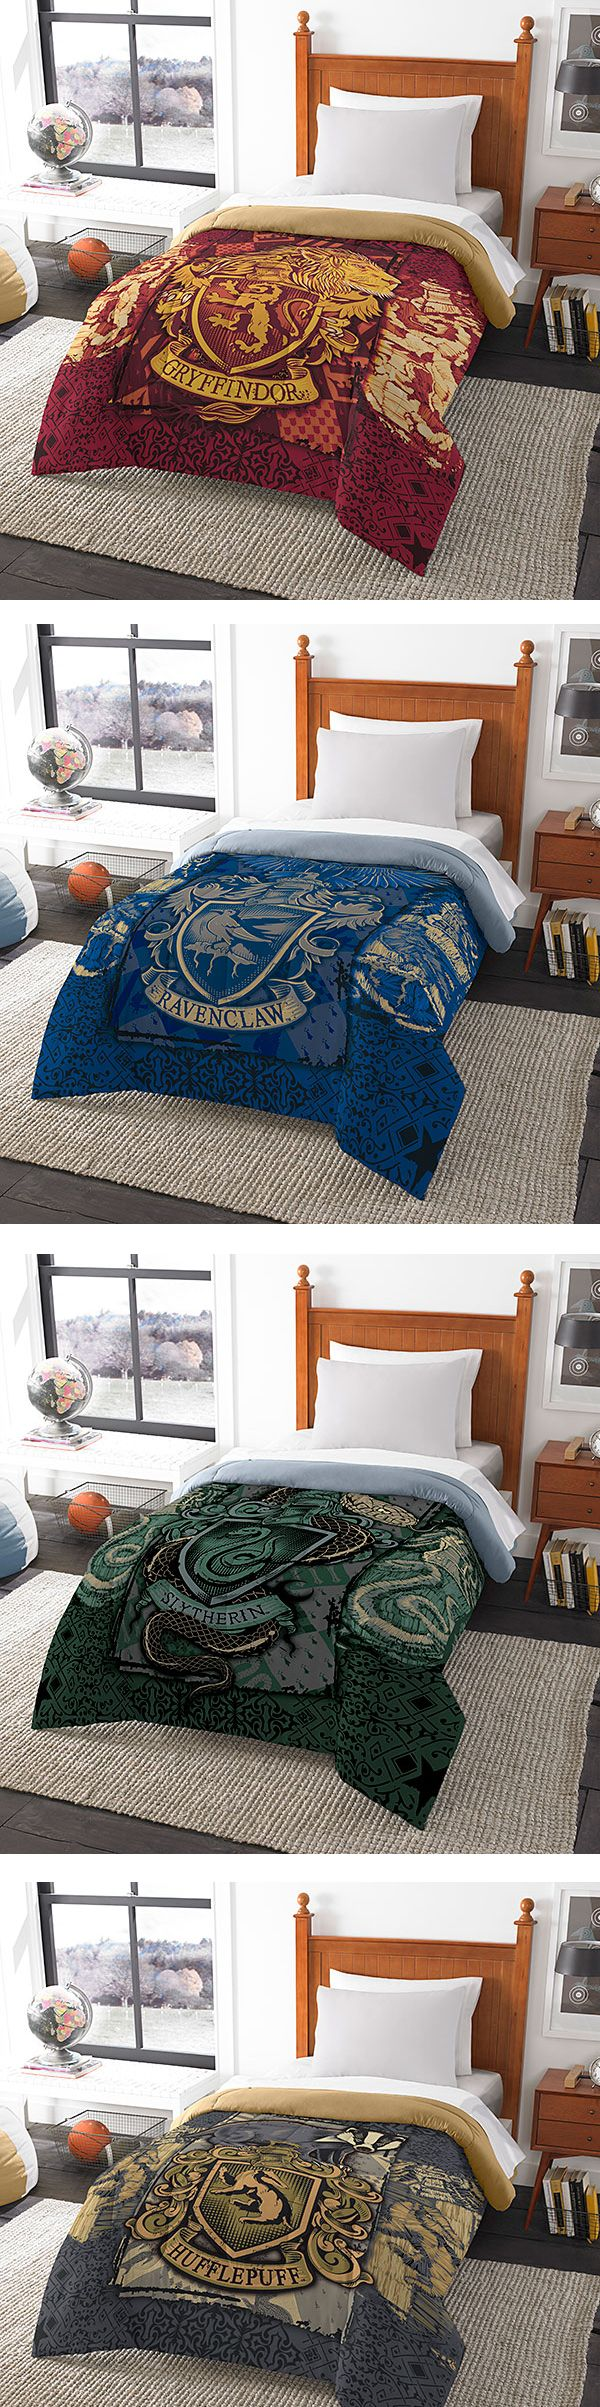 Be a Slytherin under the sheets with this geeky Hogwarts House themed bedding! Harry Potter Wedding Theme Gifts Fantastical Weddings Gifts fantasticalweddings.com Hogwarts Bed-In-a-Bag | Thinkgeek.com